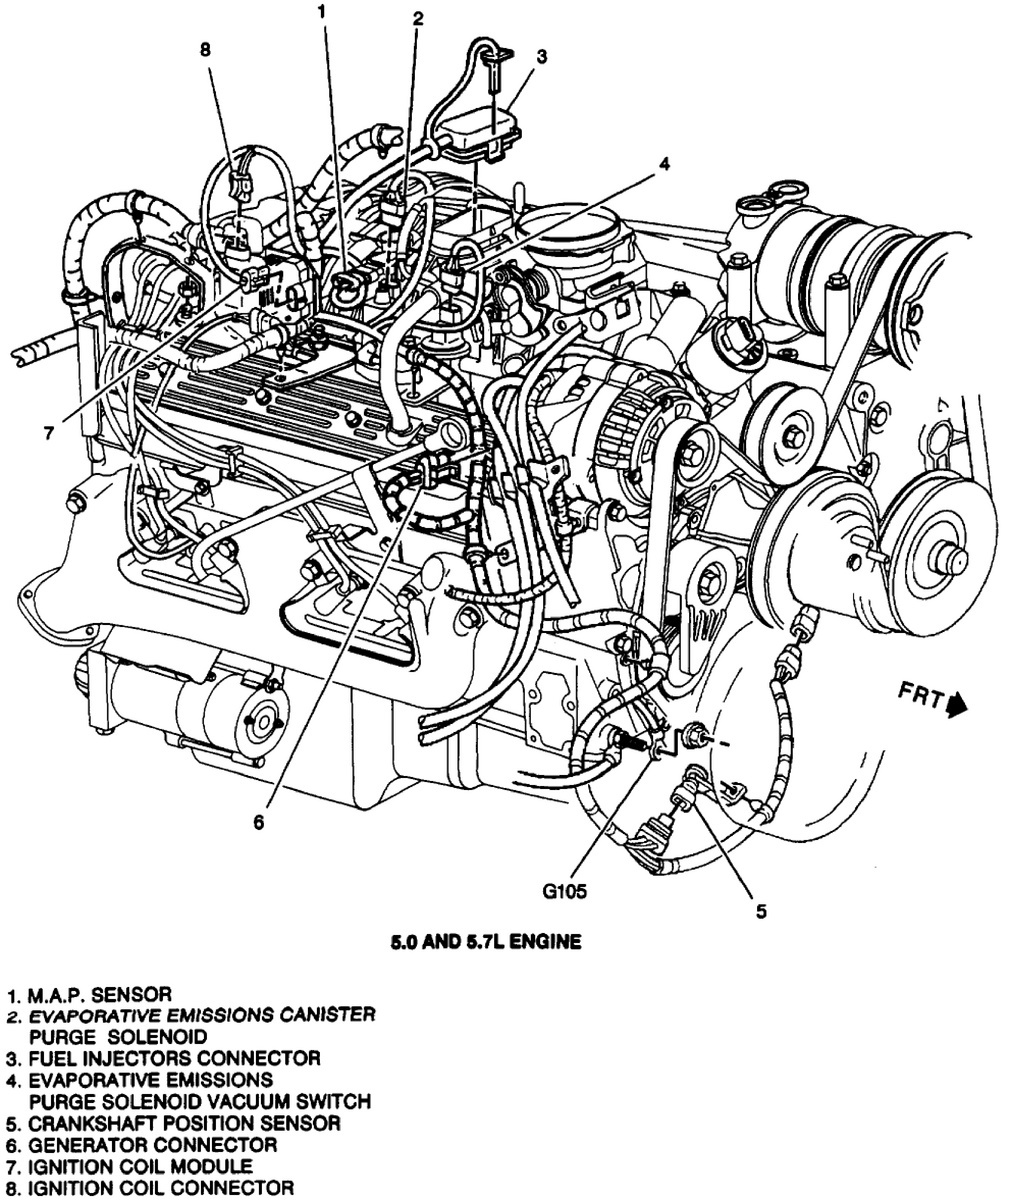 96 vortec engine sensor diagram wiring library rh 85 informaticaonlinetraining co